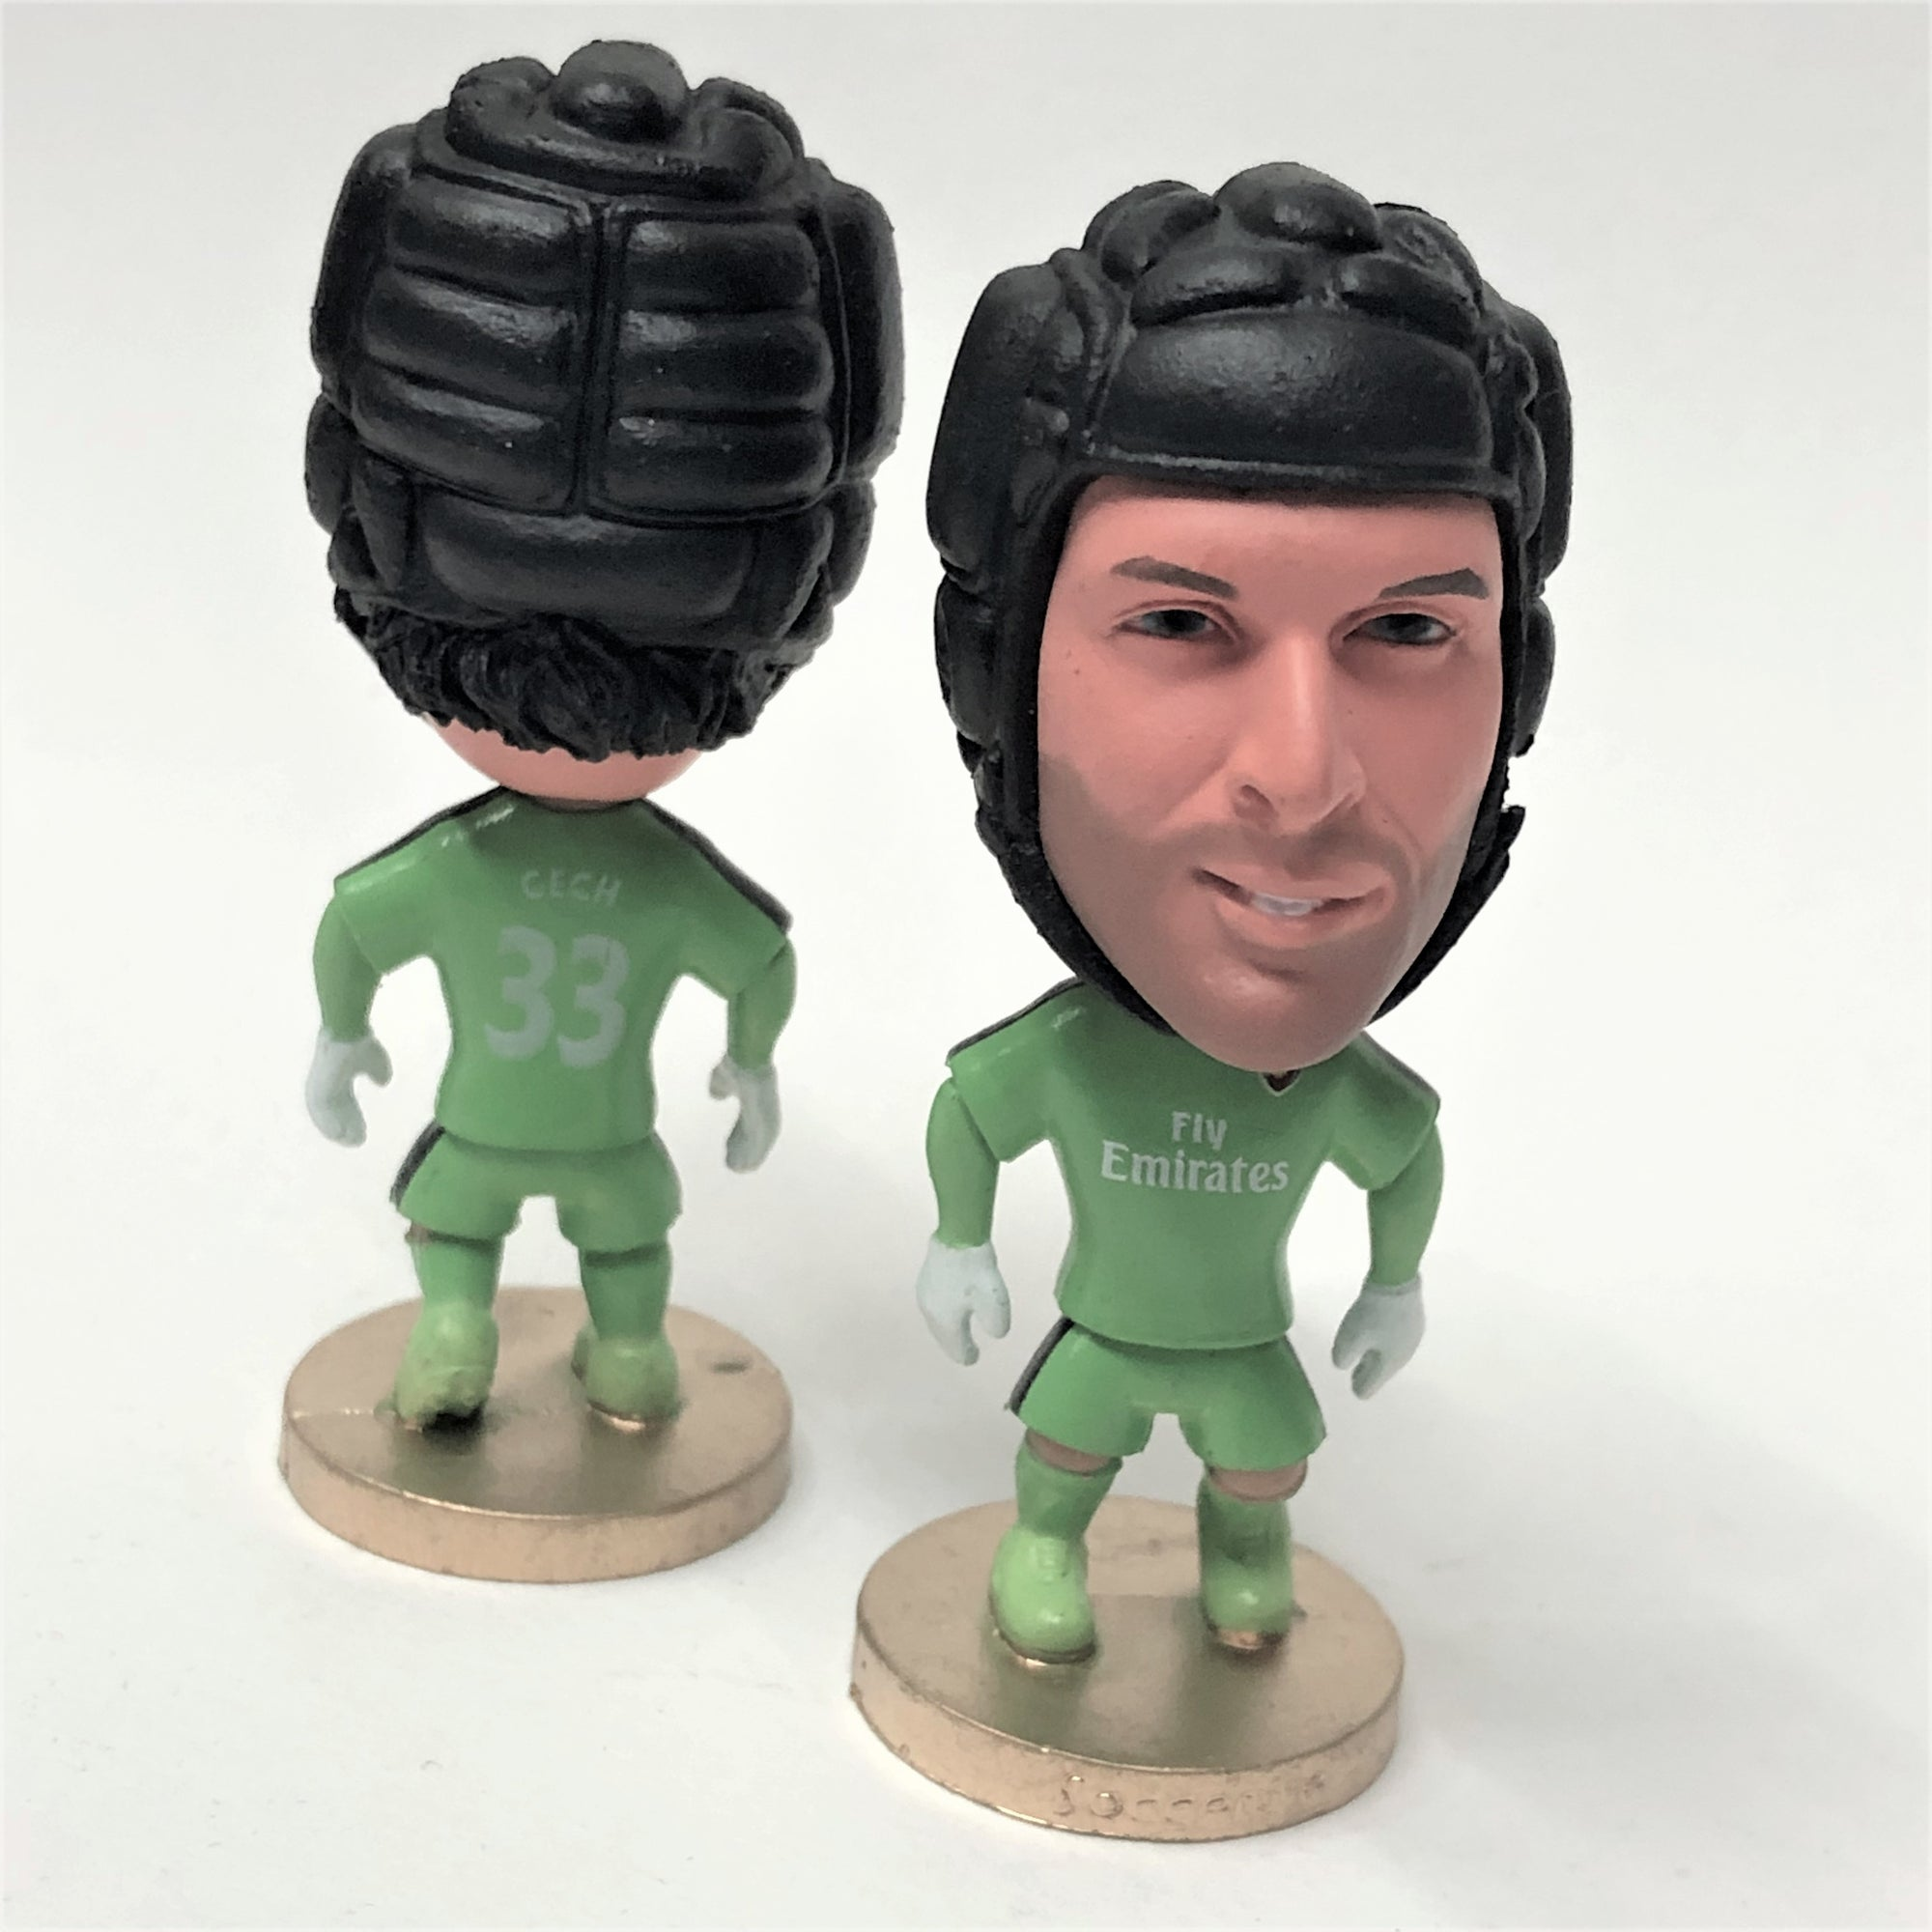 Cech Arsenal Figurine